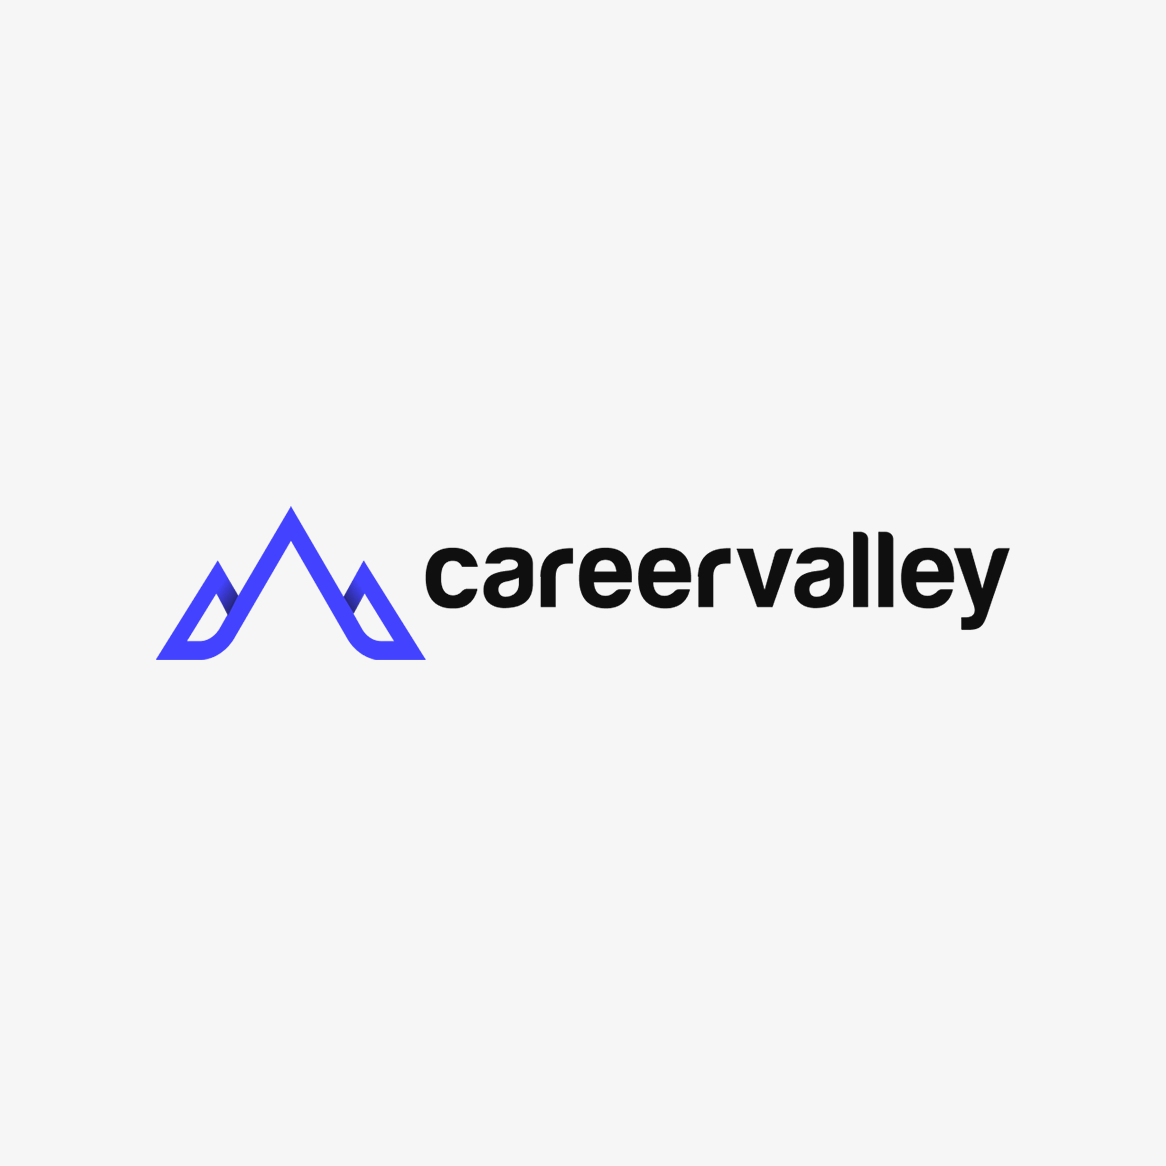 careervalley